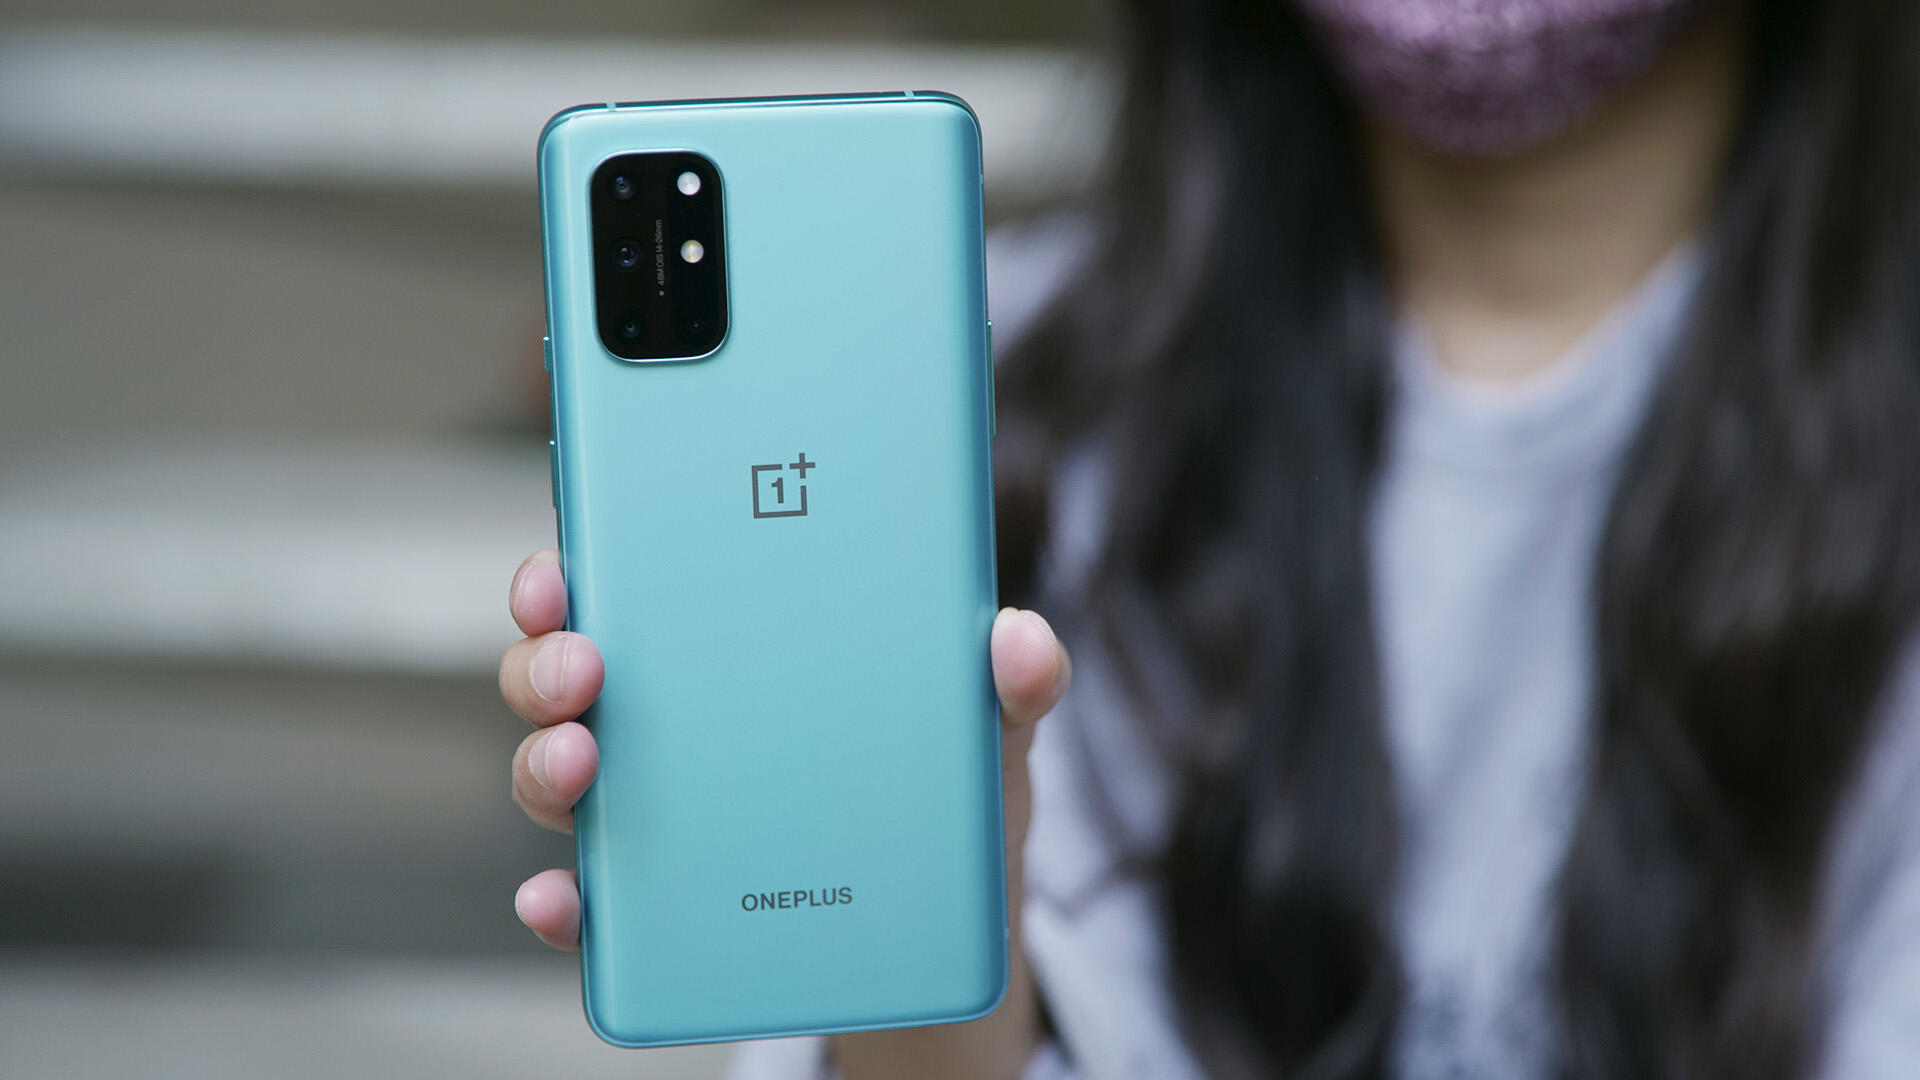 Video: OnePlus 8T review: 5G phone with a stunning 120Hz display